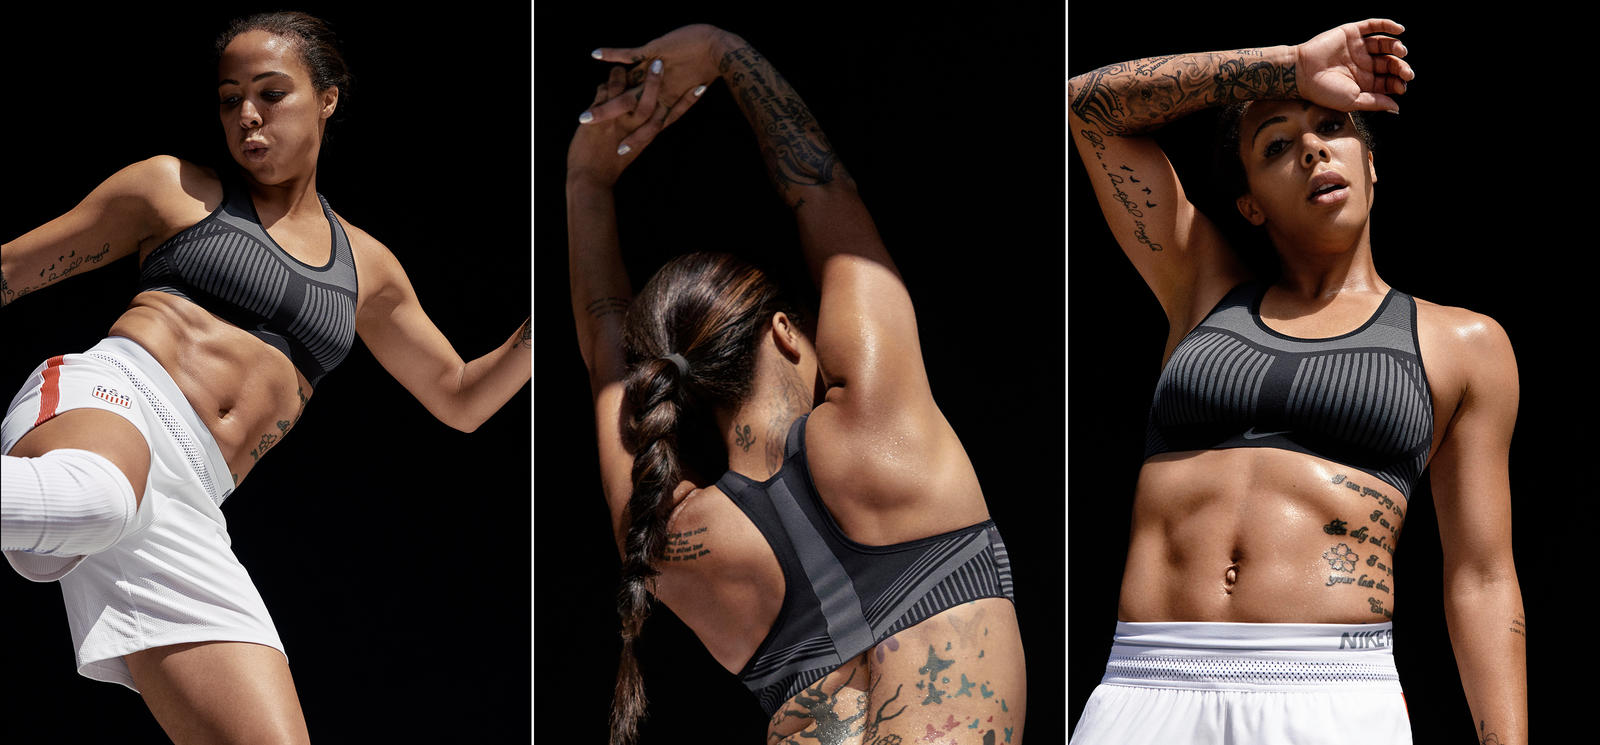 Soccer player and Olympic gold medalist Sydney Leroux works out in the Nike FE/NOM Flyknit Bra that combines high-support performance with unmatched comfort. © Nike